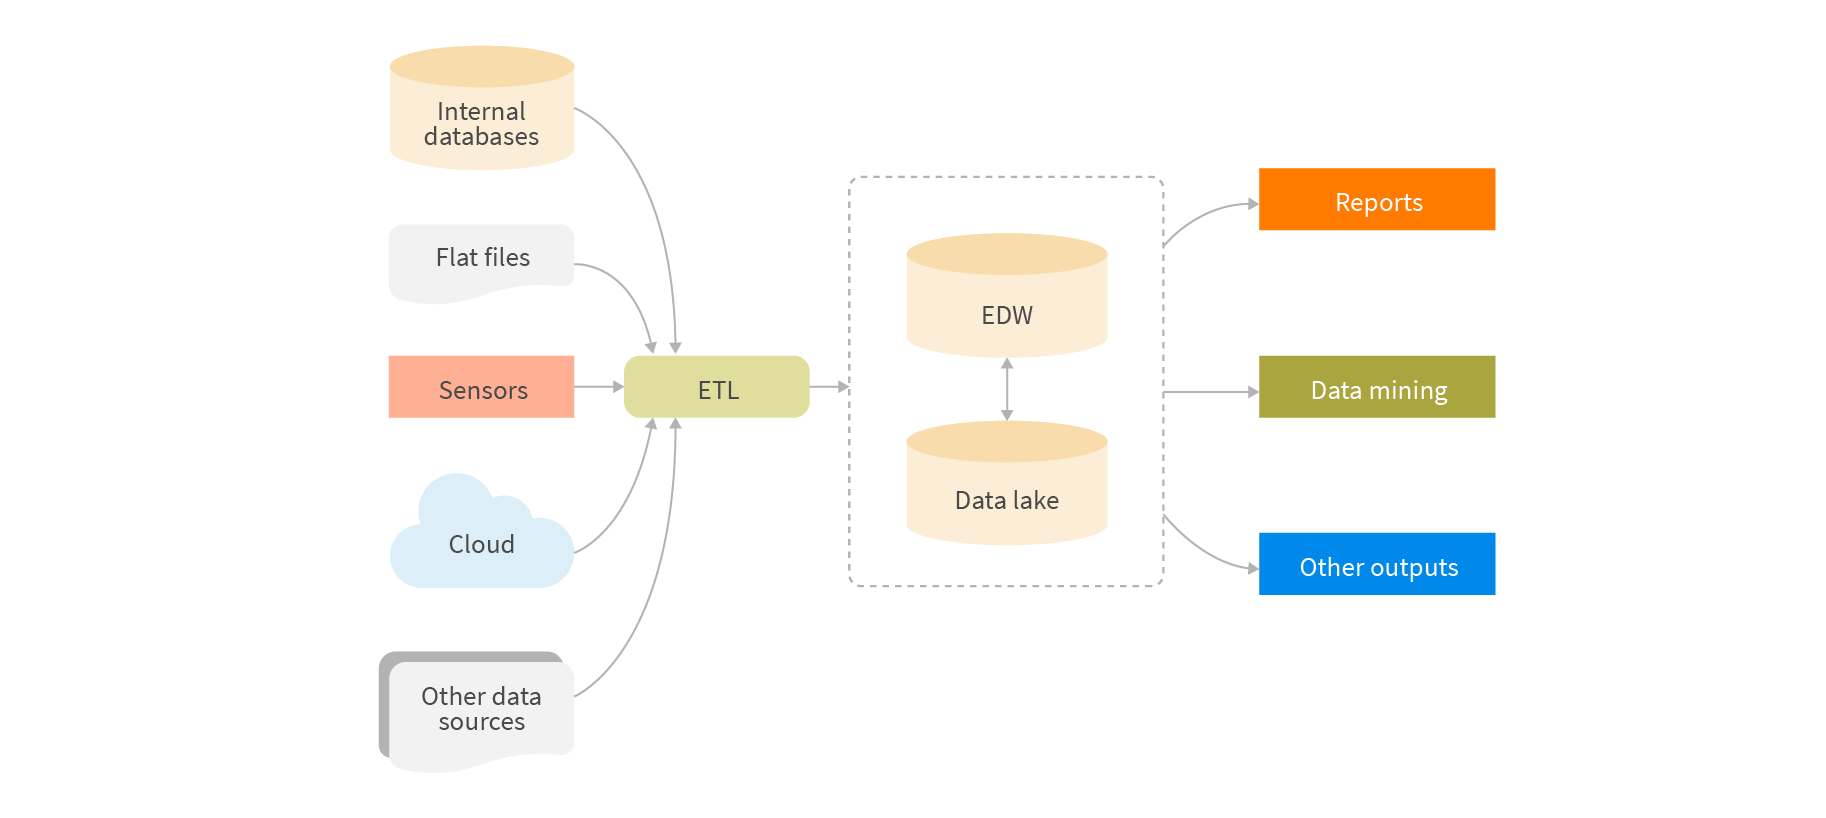 Typical data flow